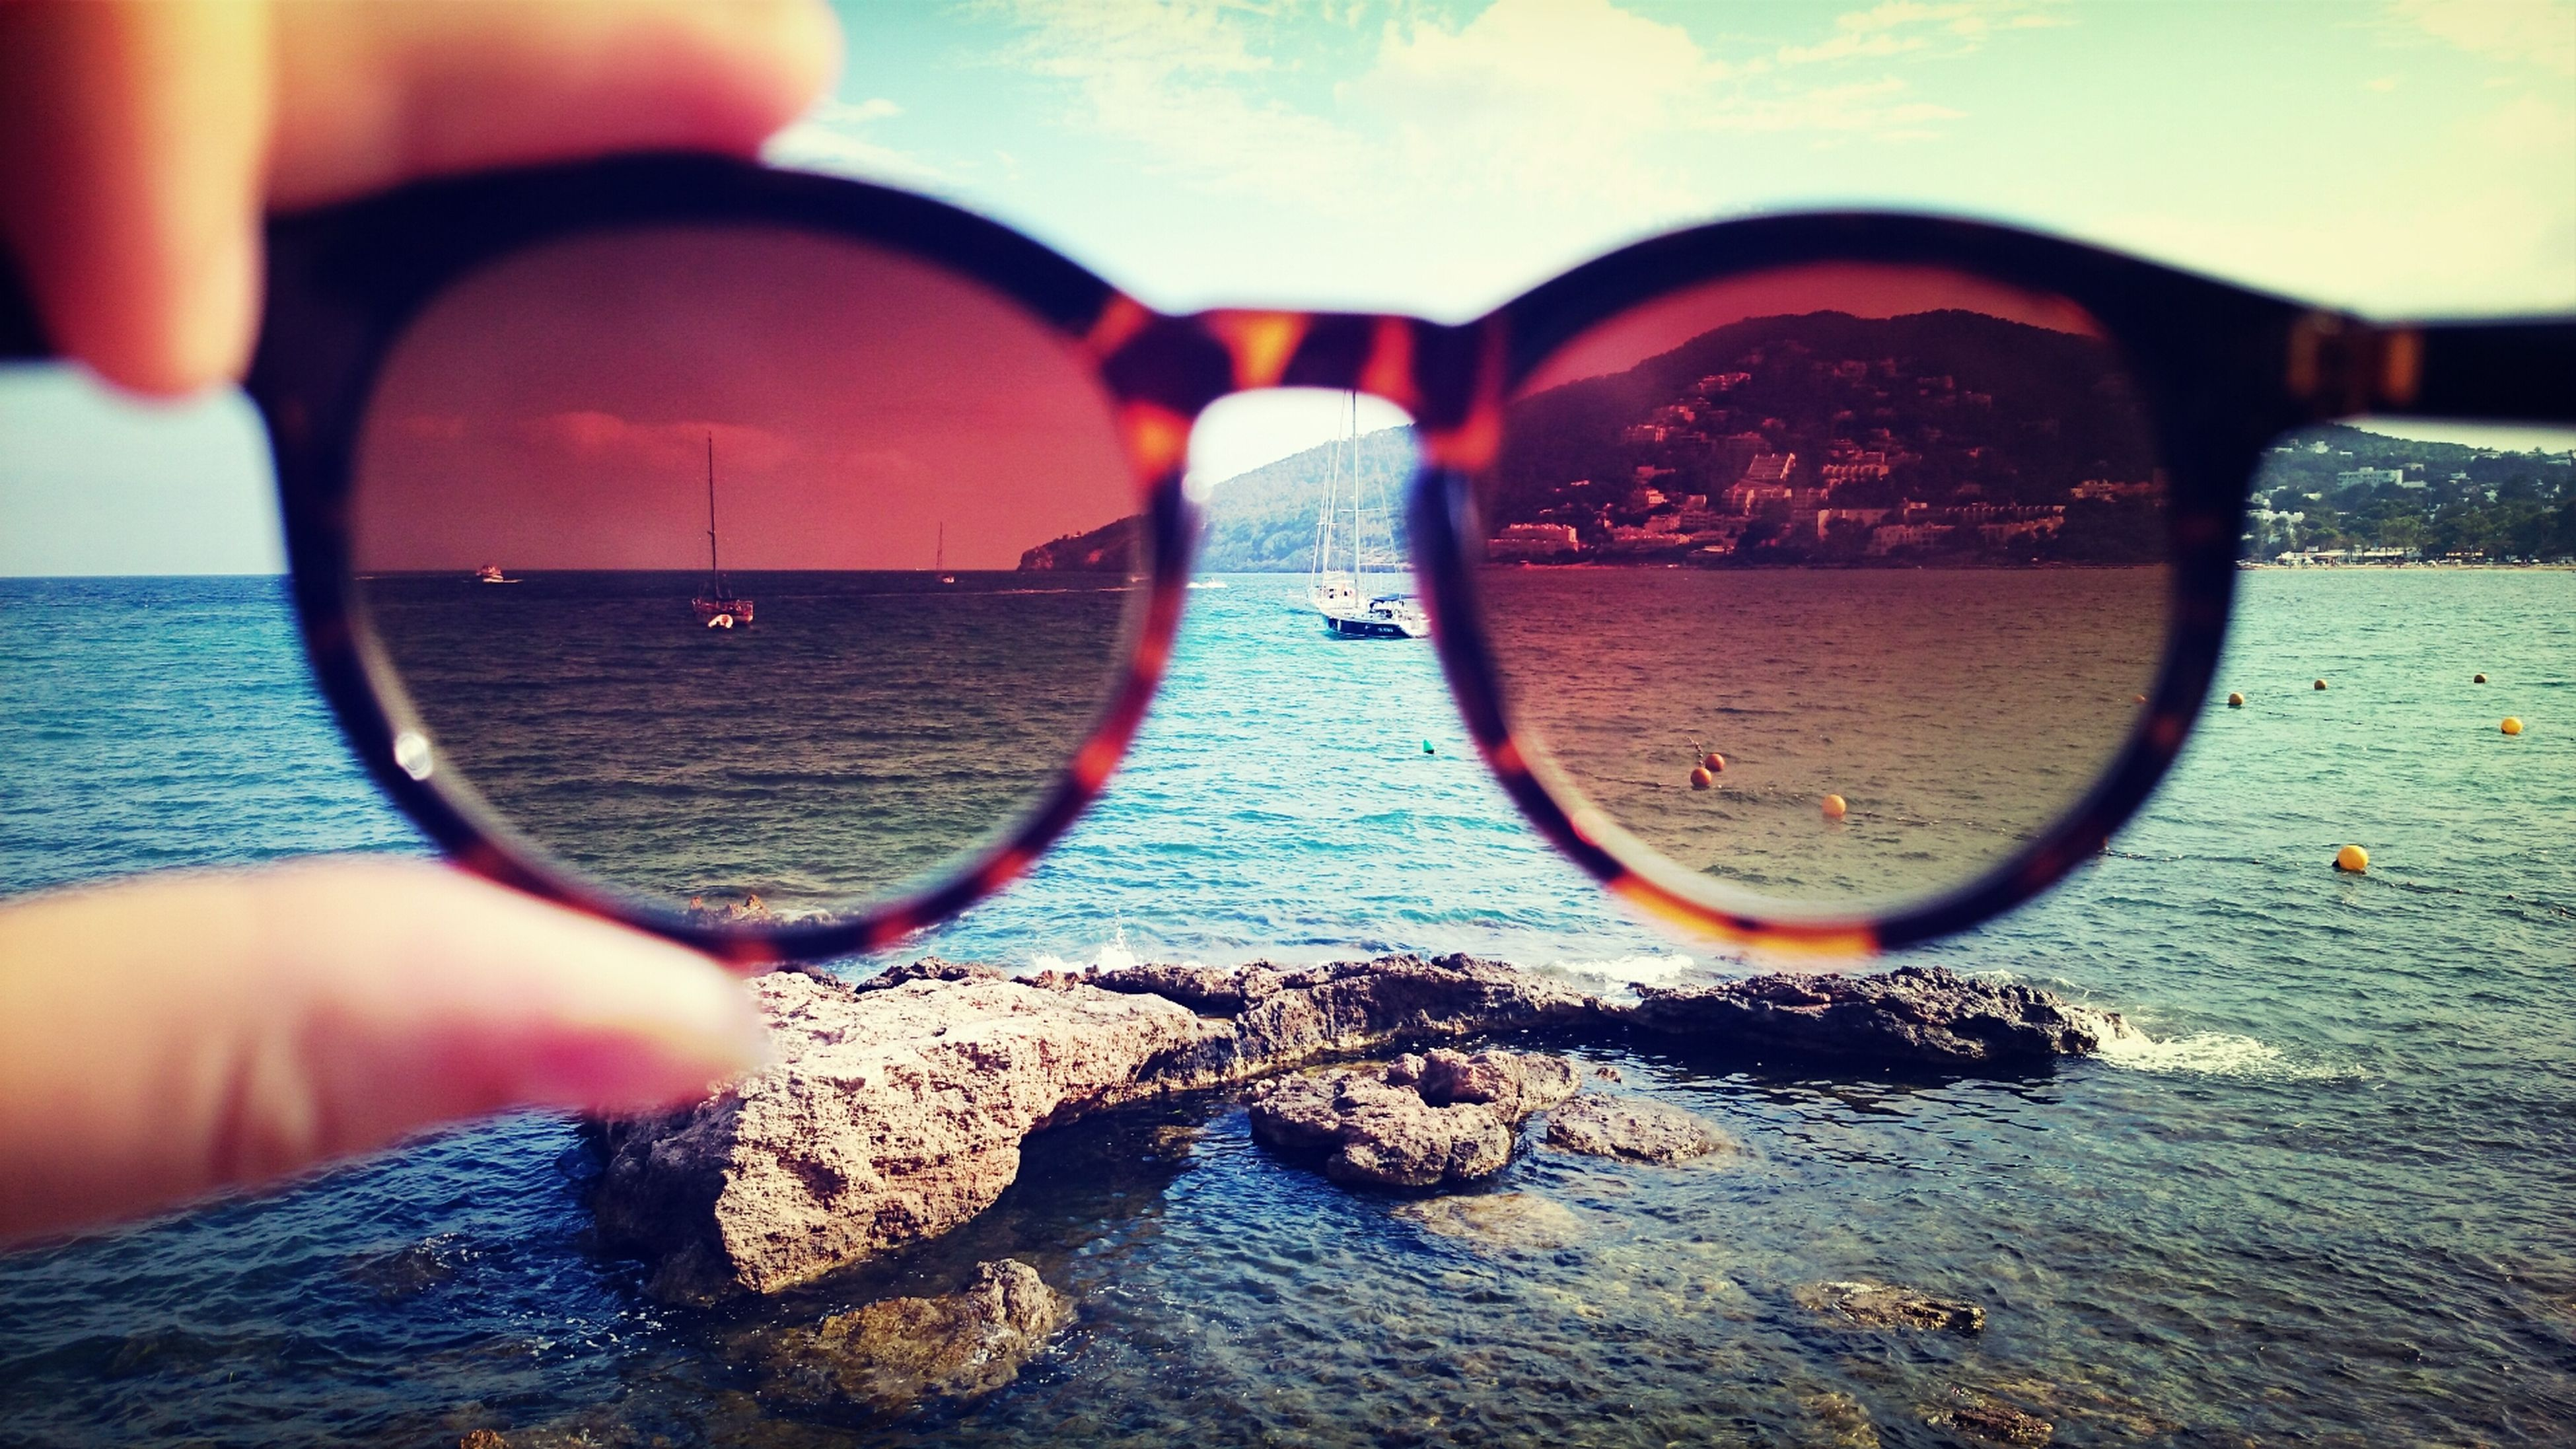 water, leisure activity, lifestyles, part of, sunglasses, reflection, person, sea, cropped, holding, vacations, transportation, close-up, unrecognizable person, sky, beach, mode of transport